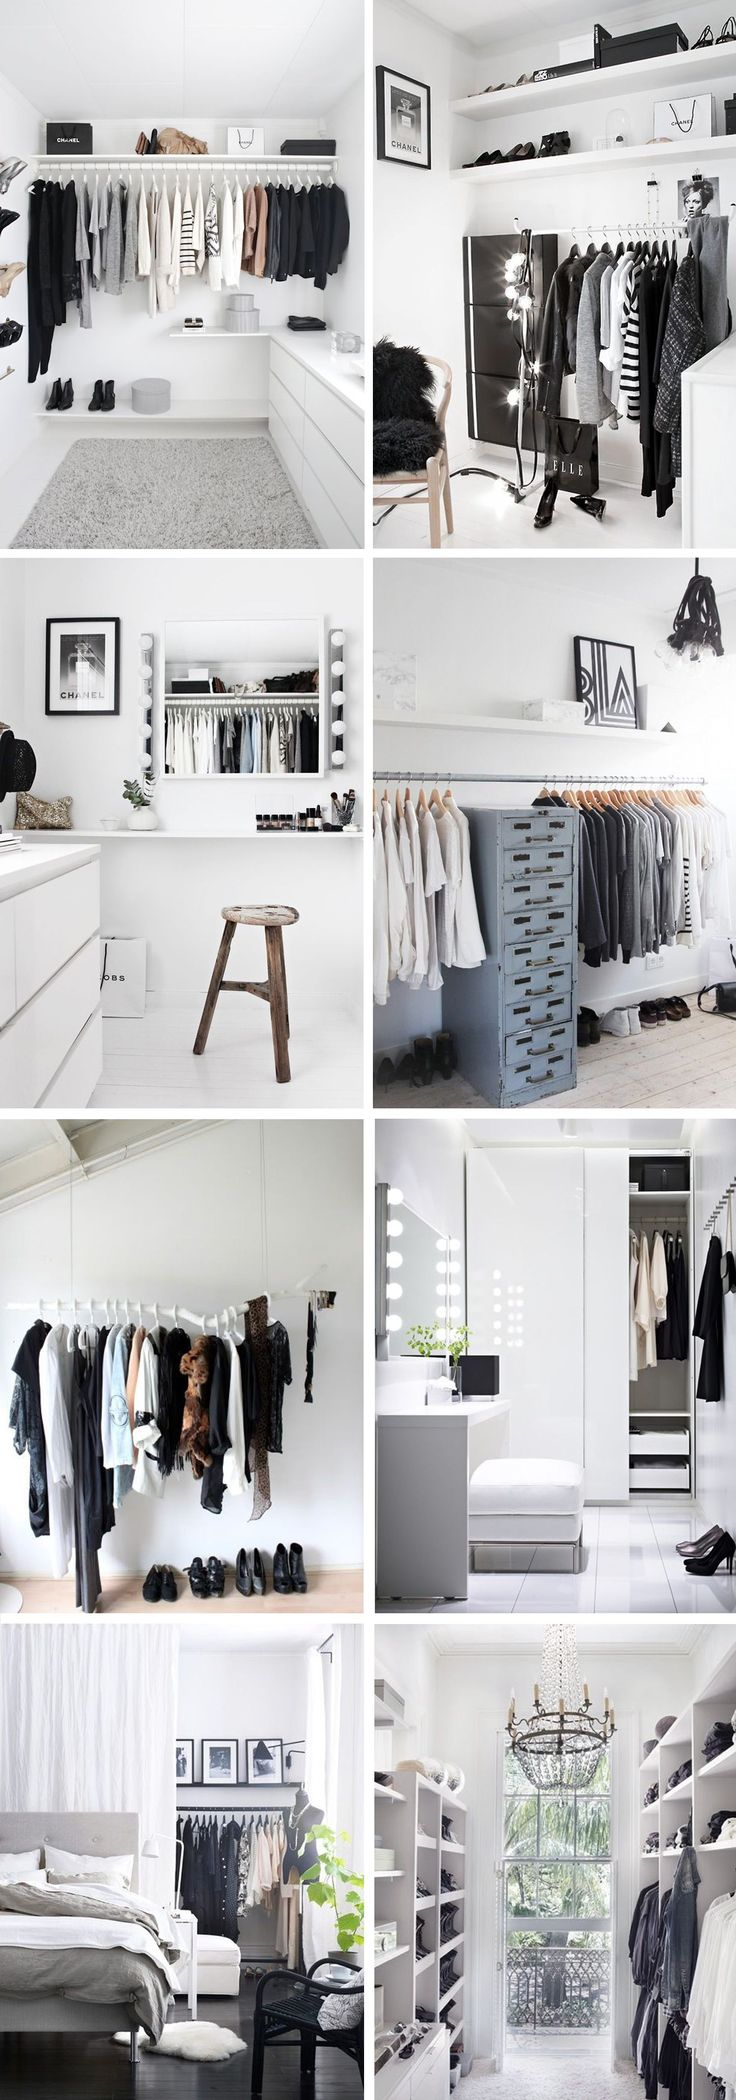 Wardrobe Closet Ideas 25 Best Wardrobe Closet Ideas On Pinterest  Closet Building A